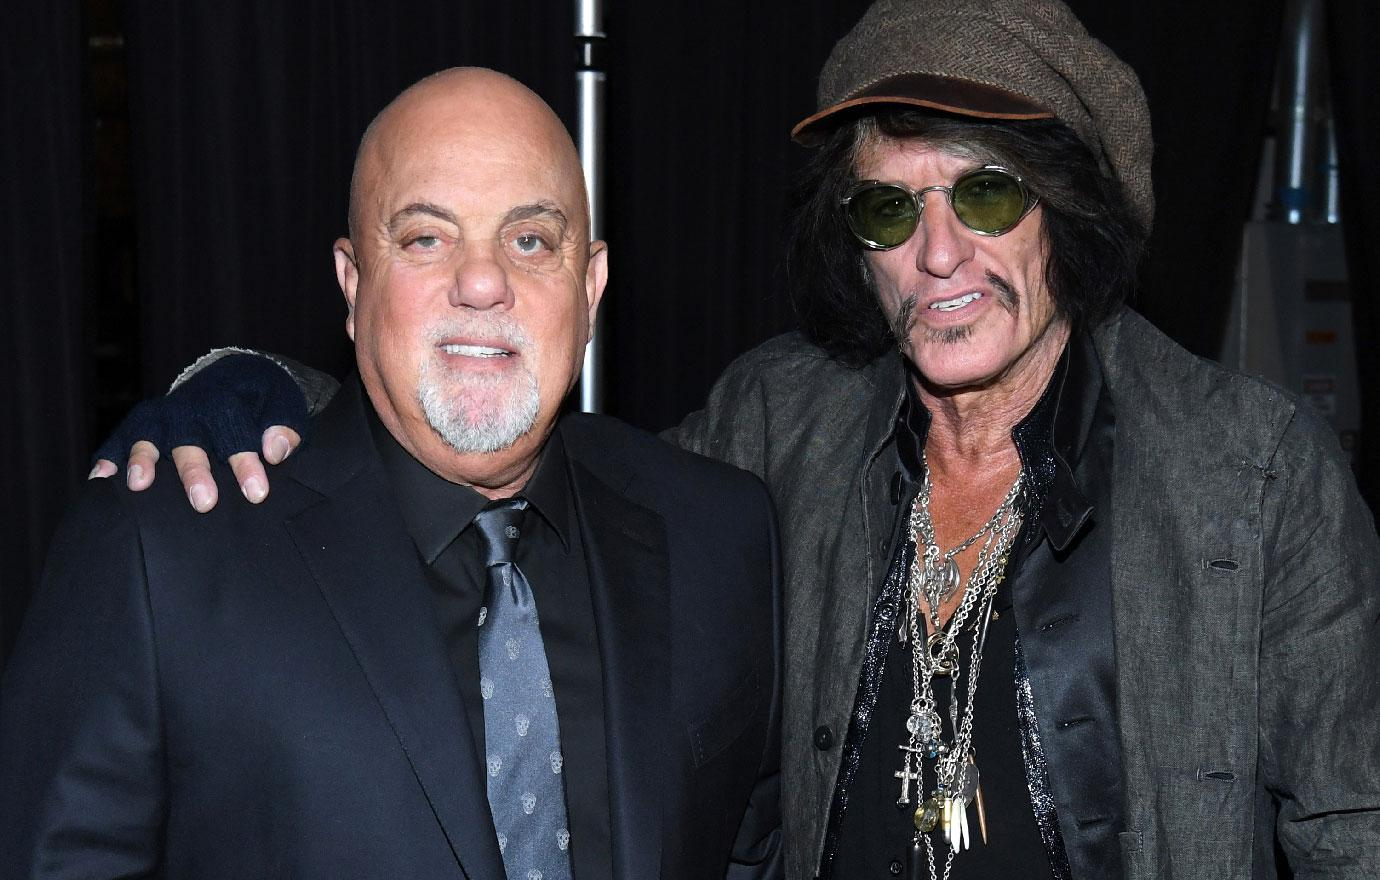 Aerosmith Star Joe Perry Hospitalized After Performing With Billy Joel